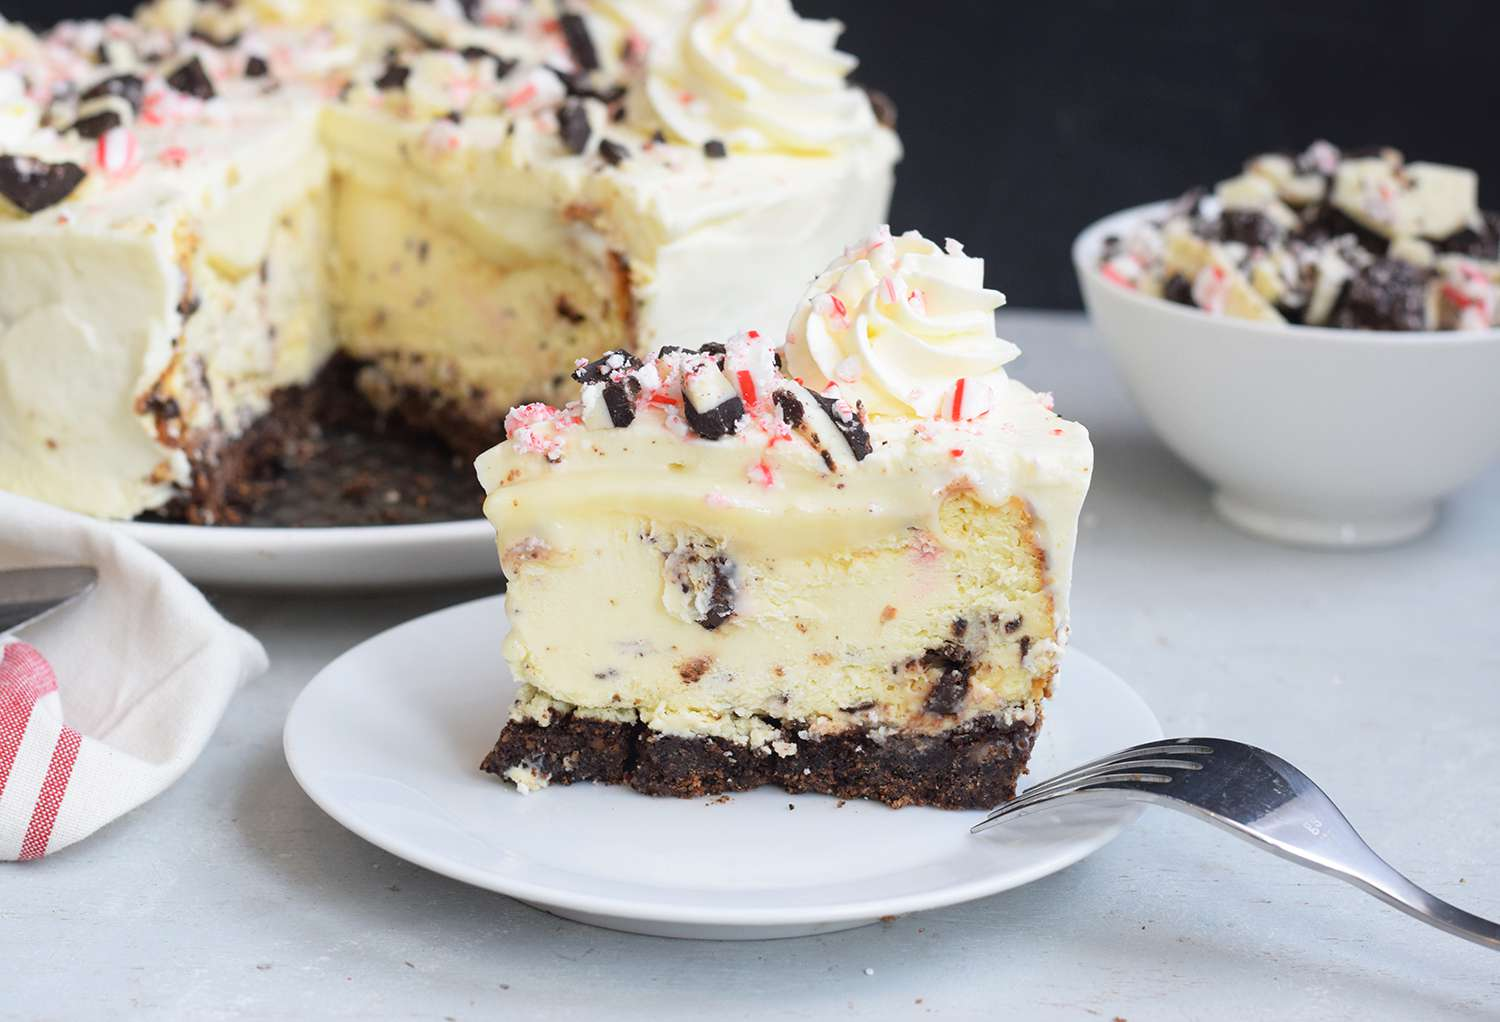 Peppermint bar cheesecake slice on a serving plate